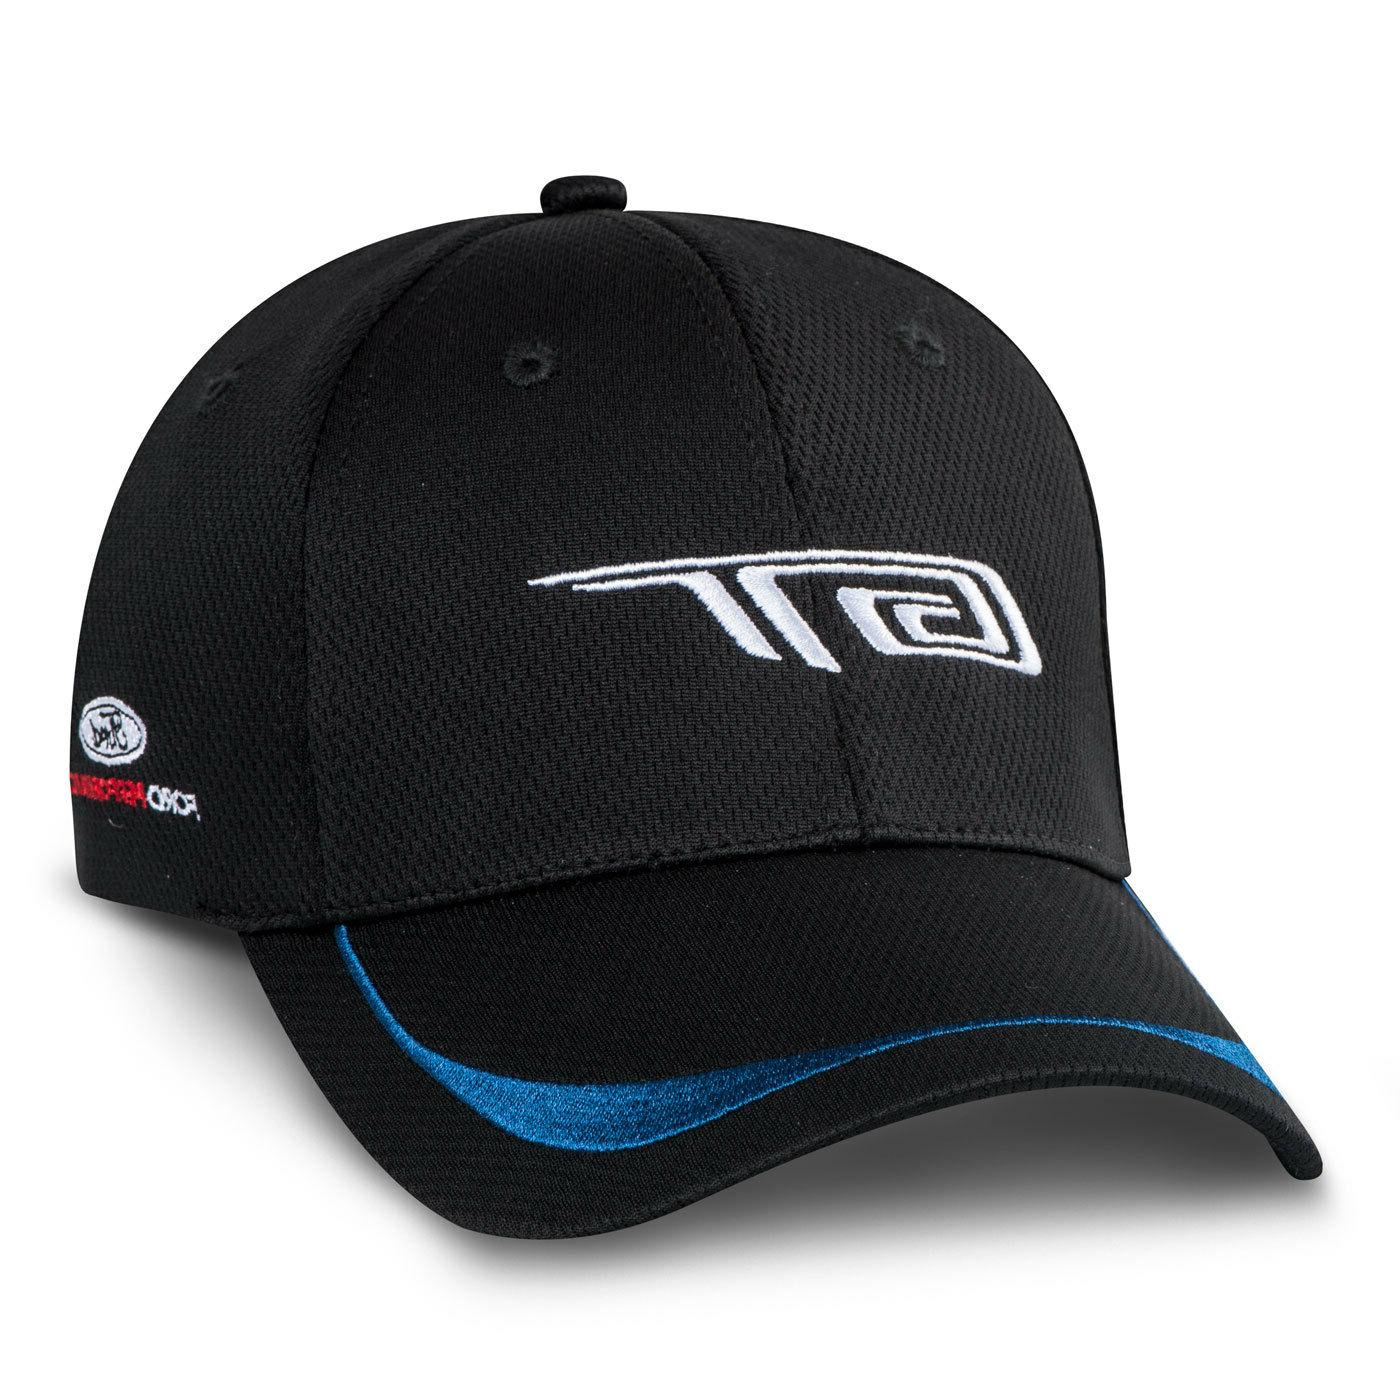 Ford GT Black and Blue Performance Polyester Hat